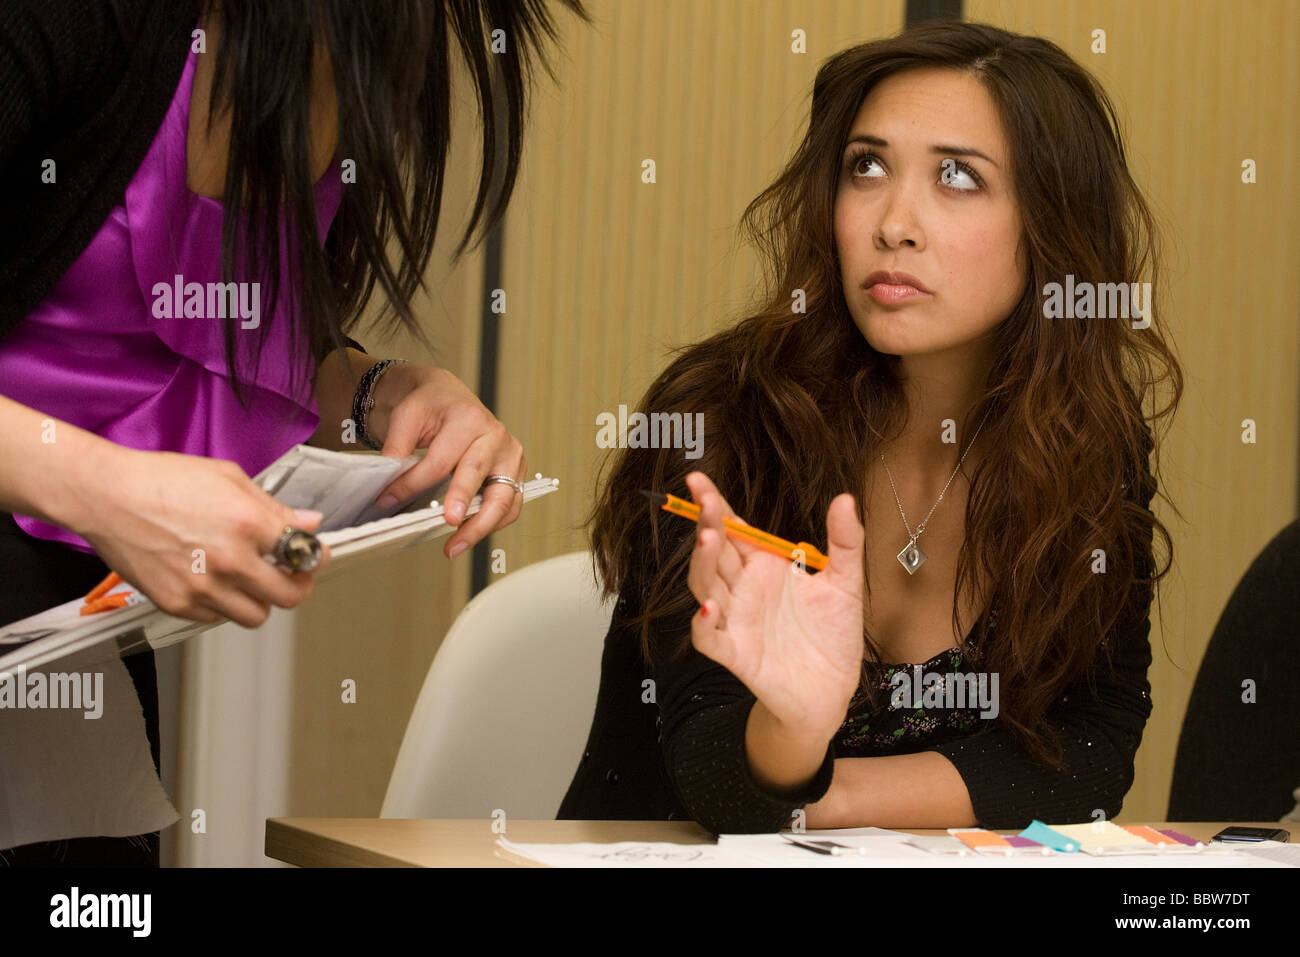 """Personality Myleene Klass meets with Mothercare staff before launch of  """"Baby K"""" collection at company HQ - Stock Image"""